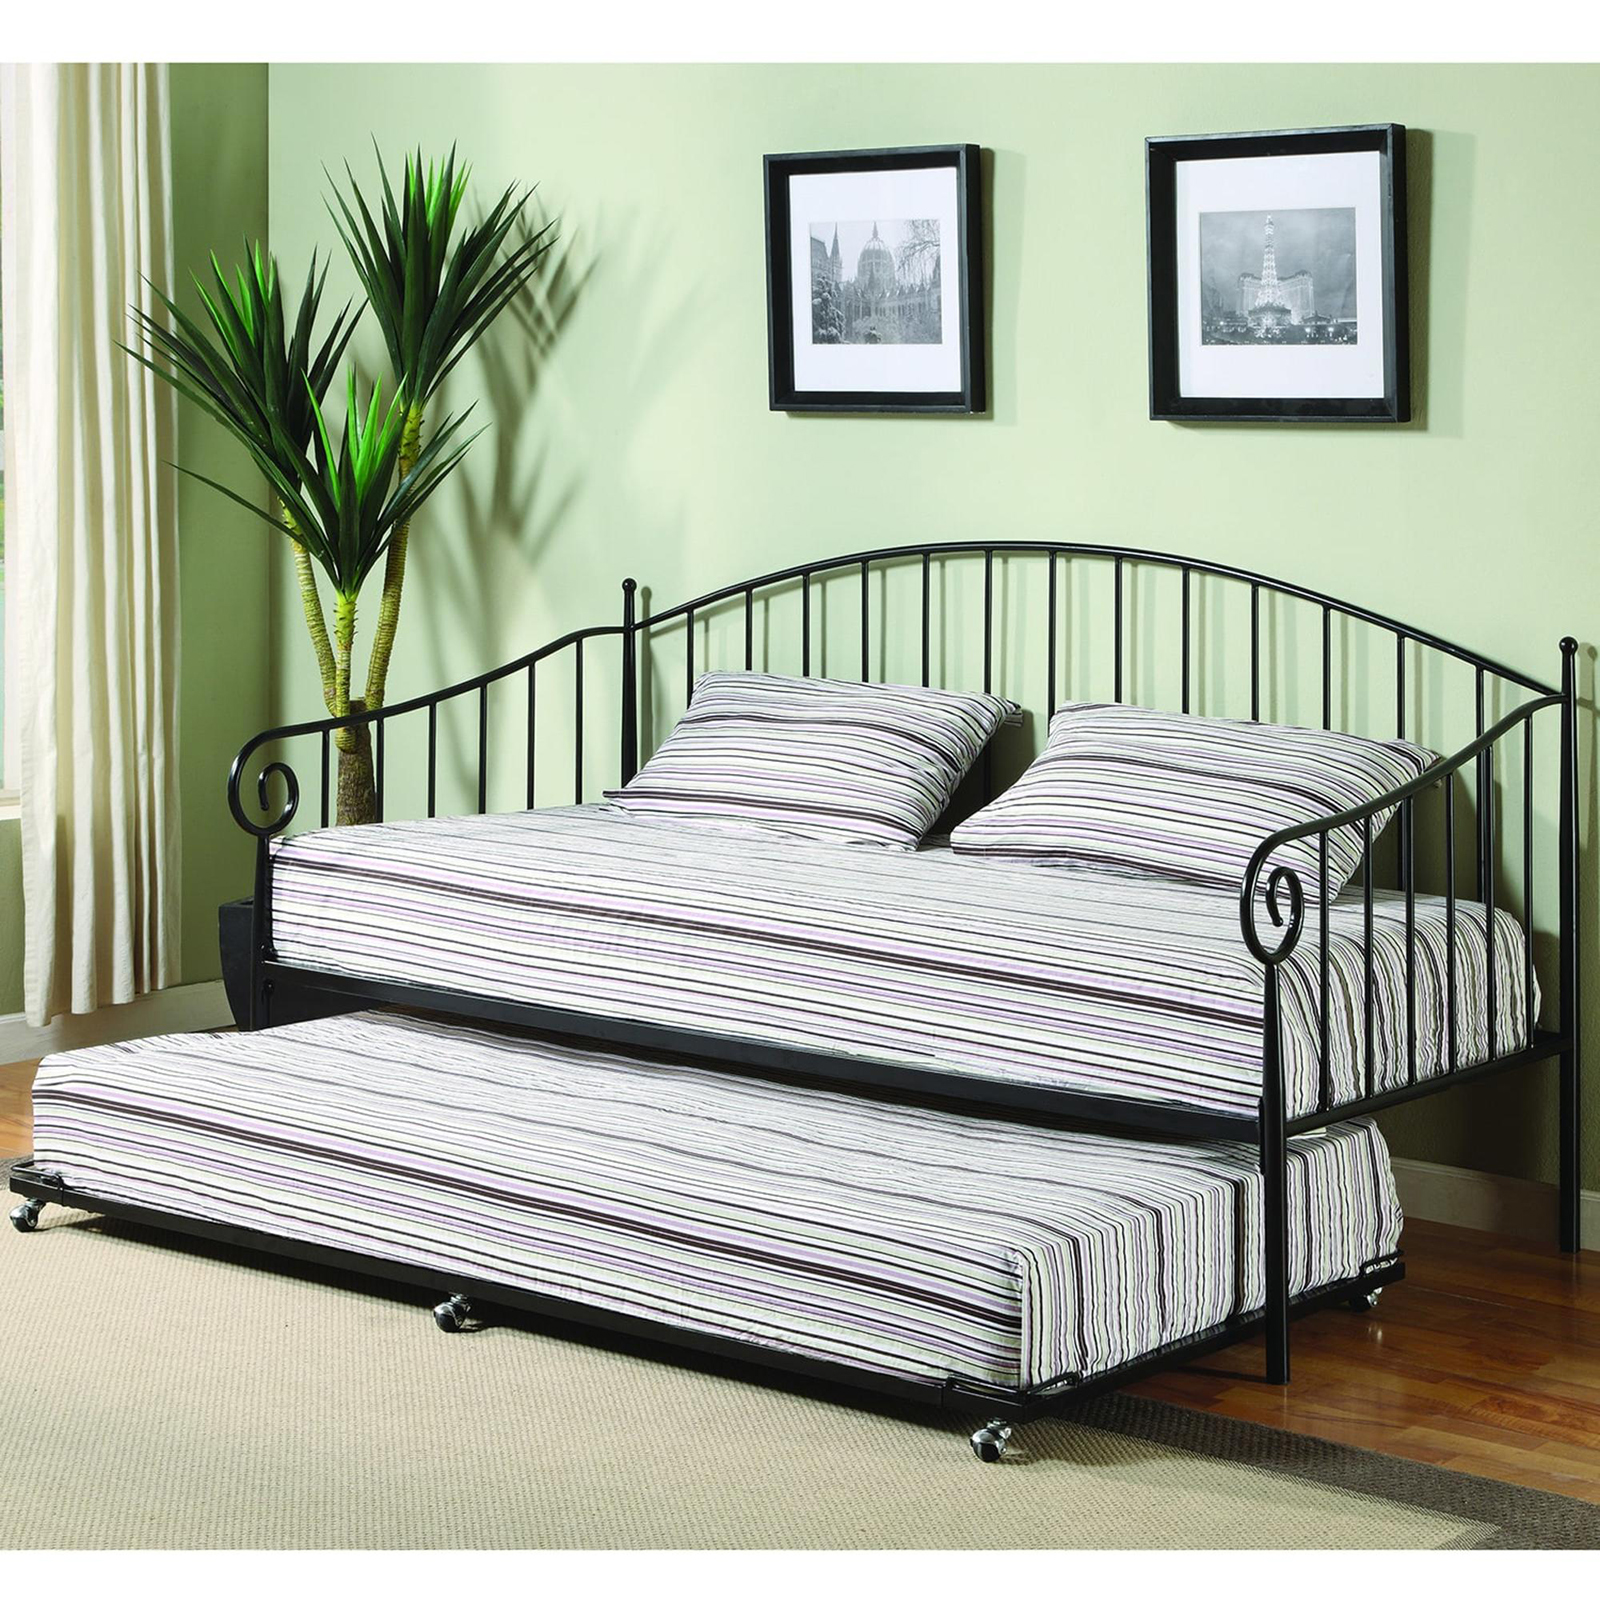 K Amp B Furniture Bt01 Metal Black Finish Daybed Sears